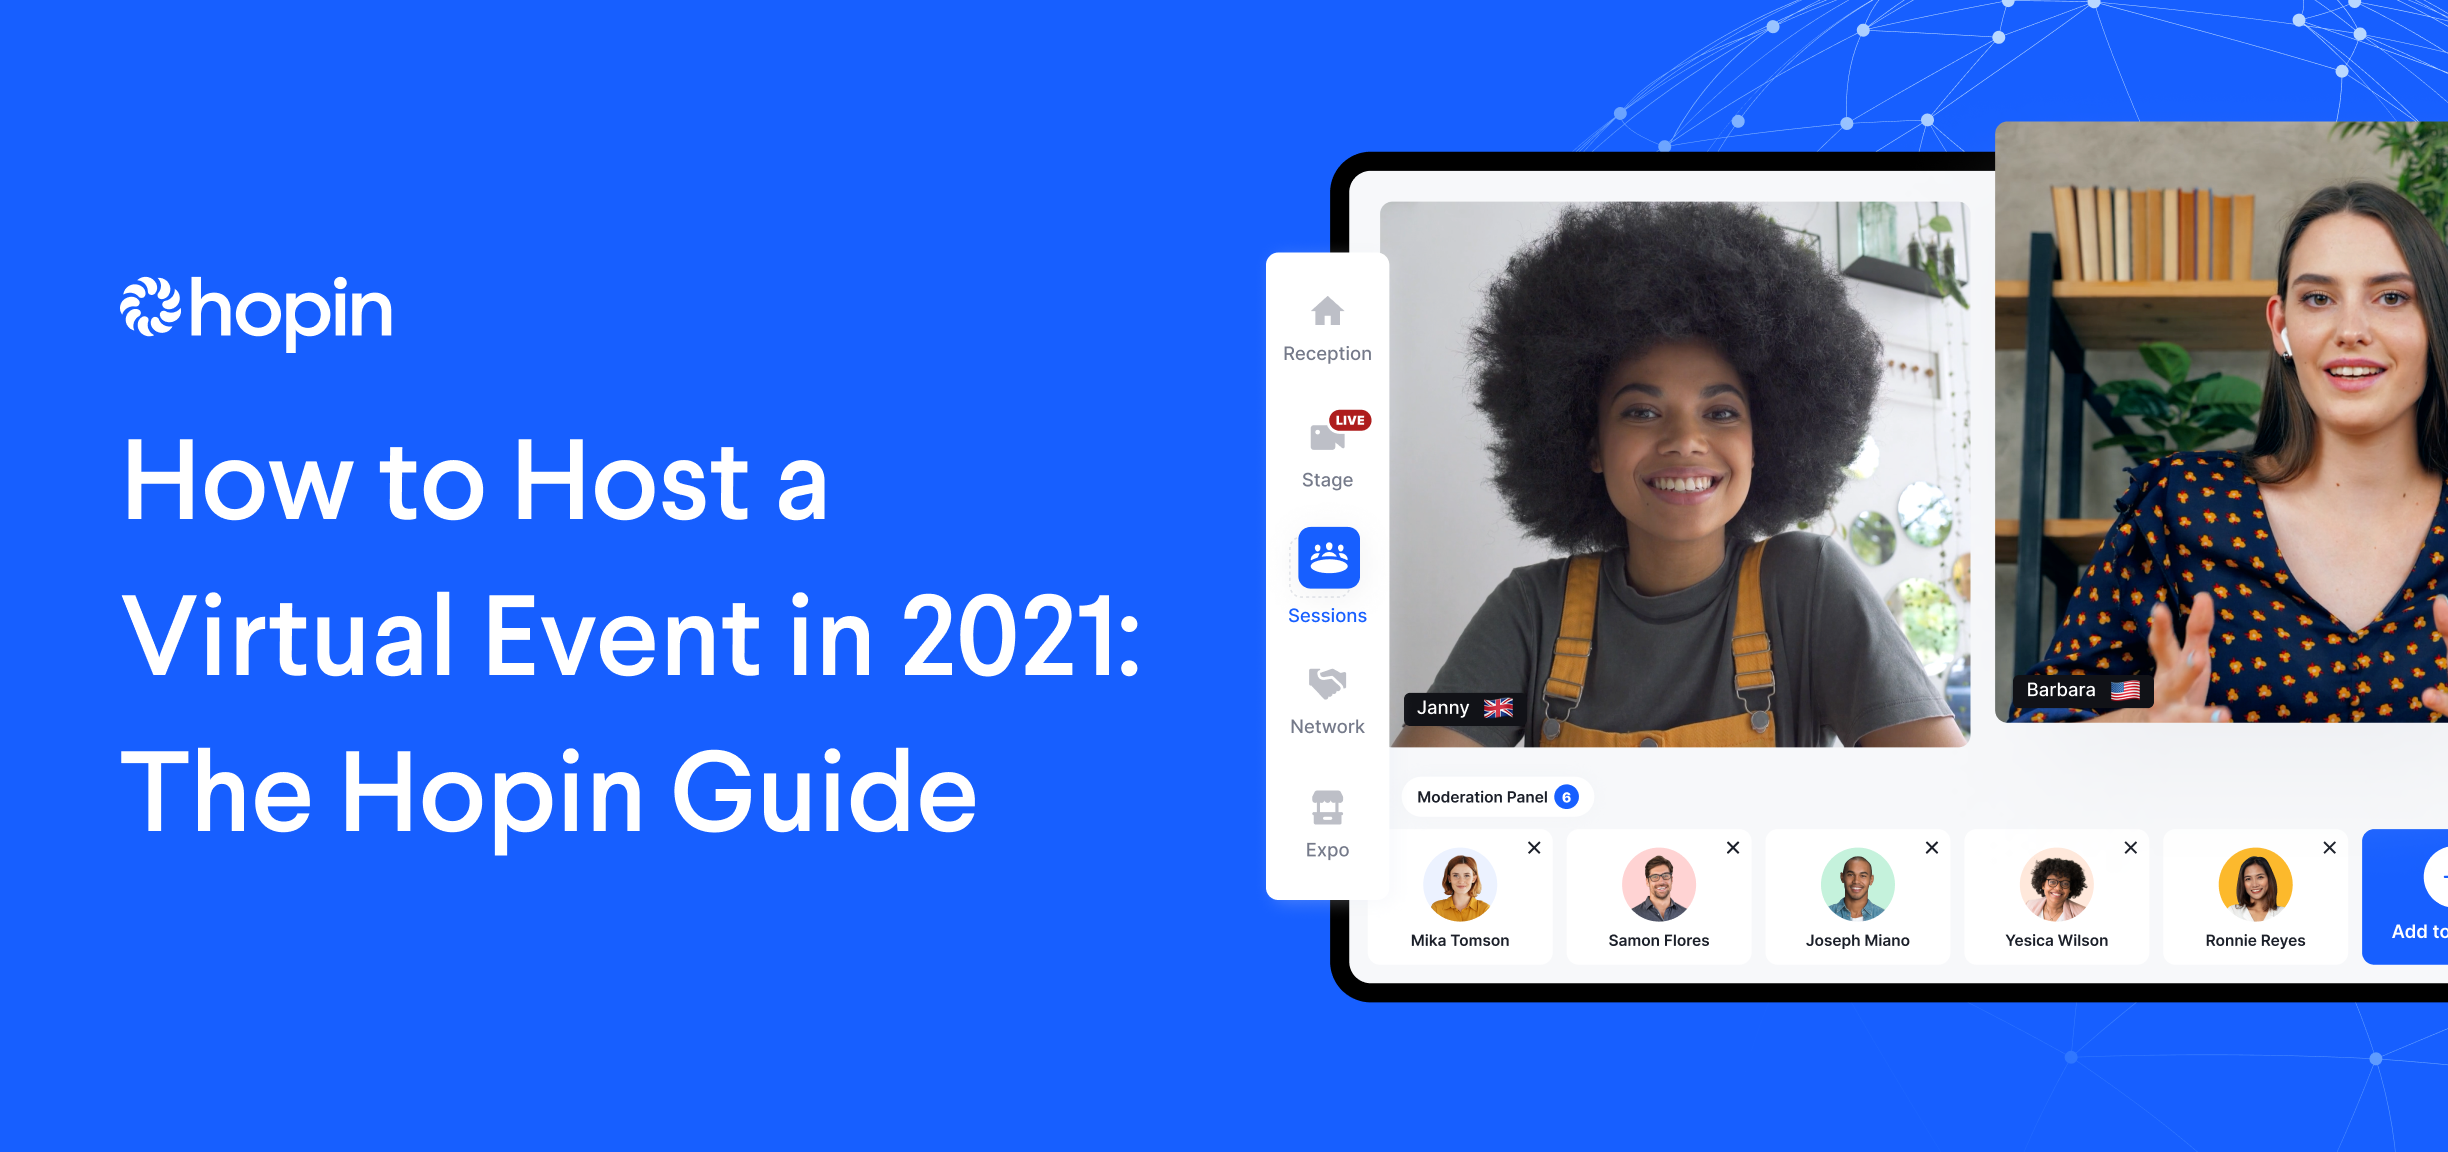 Discover how to host professional virtual events, from planning through post-event engagement, with our step-by-step Guide.